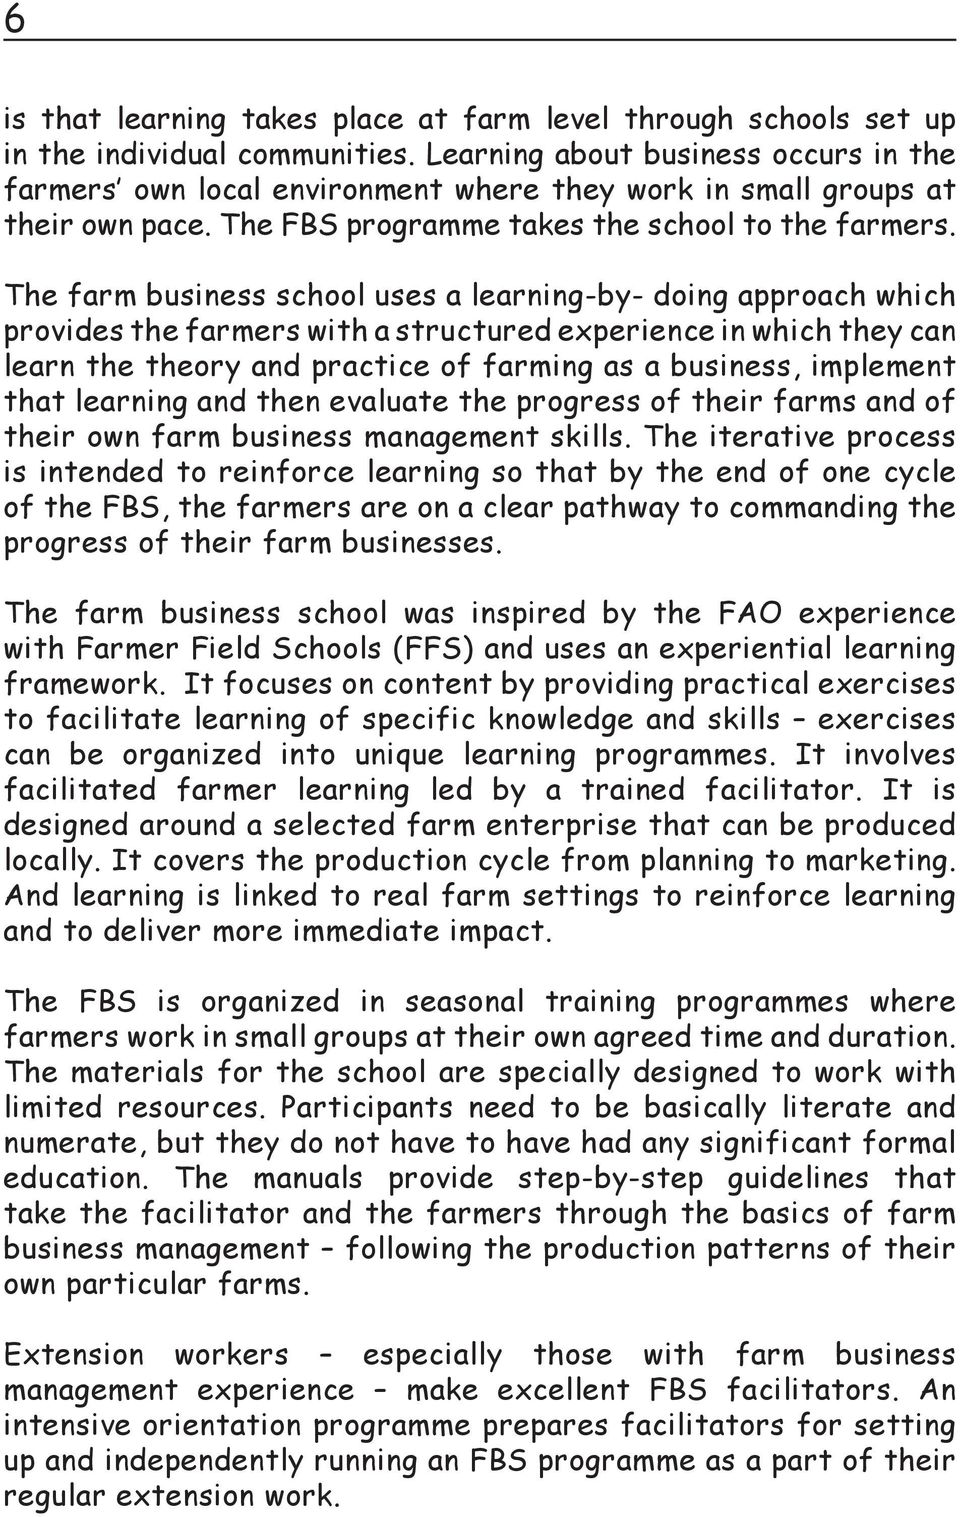 The farm business school uses a learning-by- doing approach which provides the farmers with a structured experience in which they can learn the theory and practice of farming as a business, implement